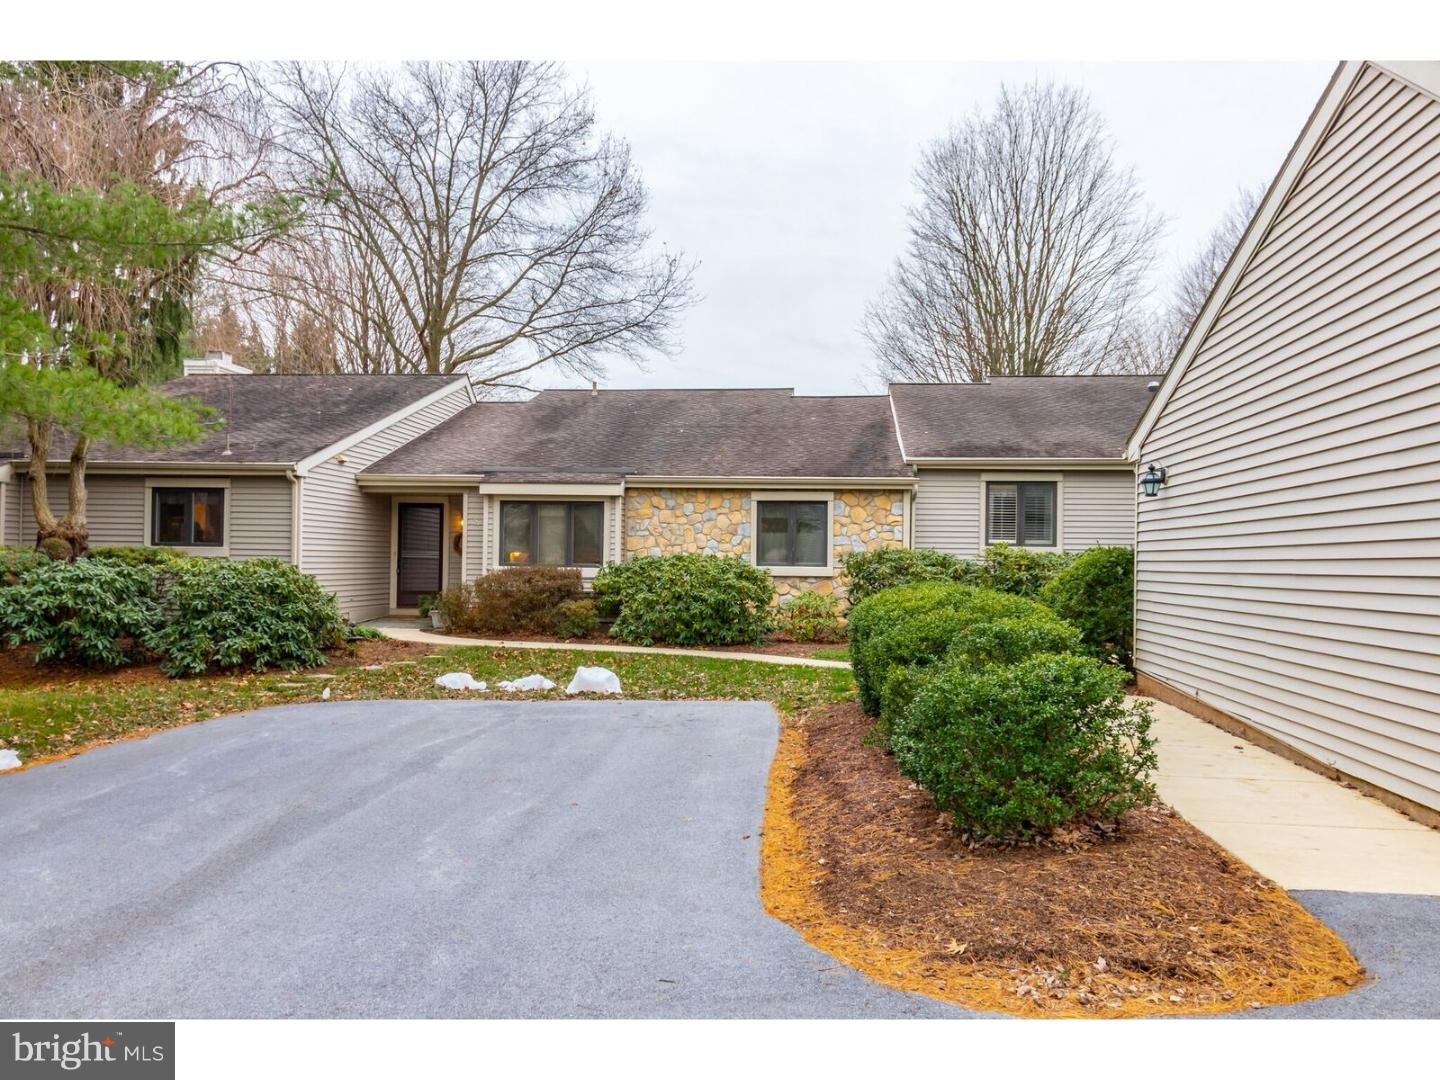 570 Franklin Way West Chester, PA 19380